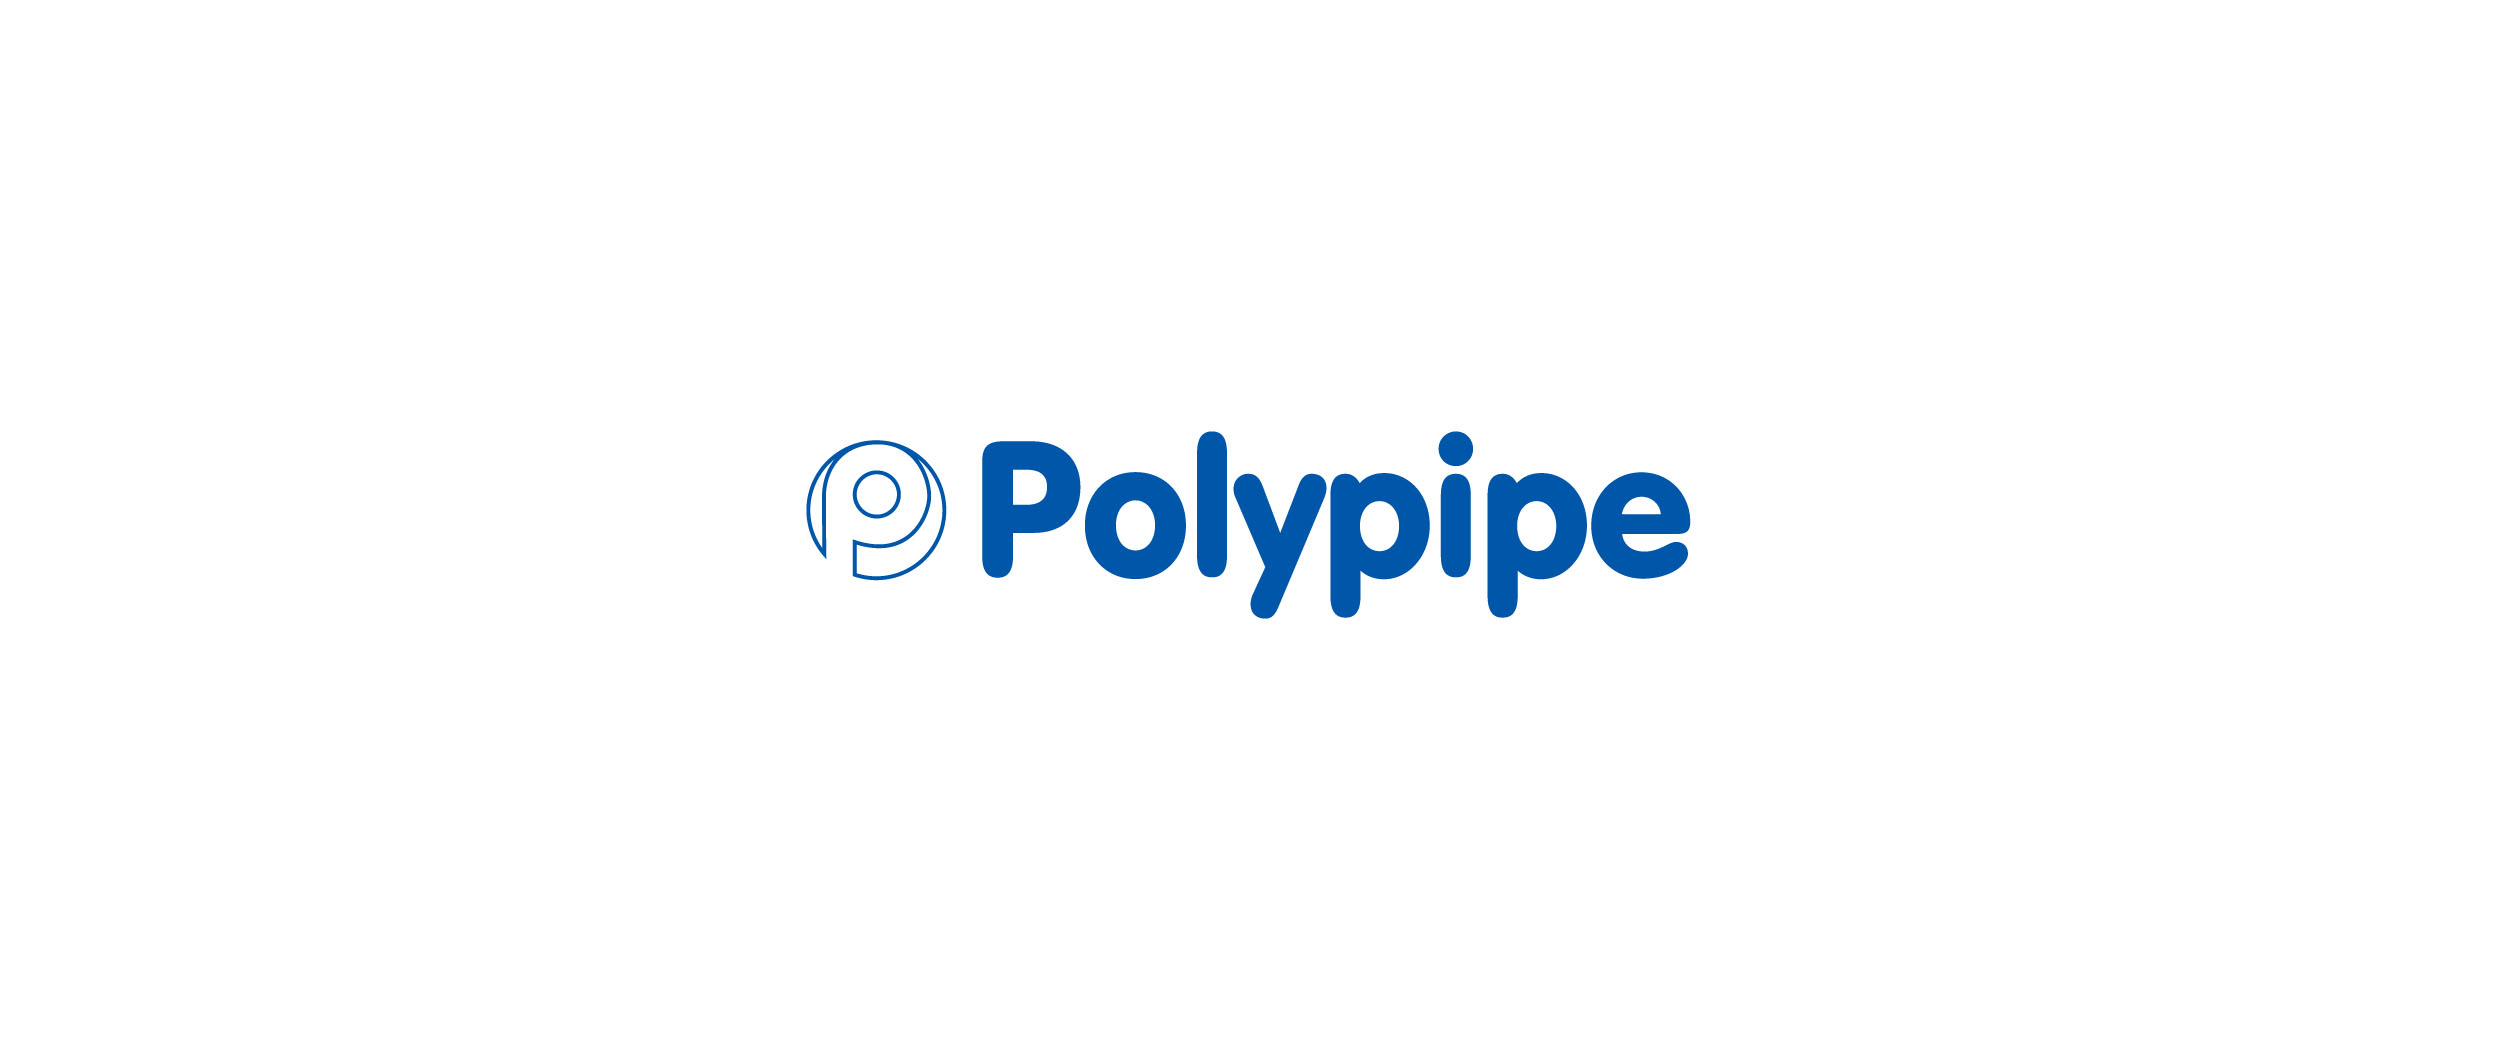 Polypipe Building Services.jpg